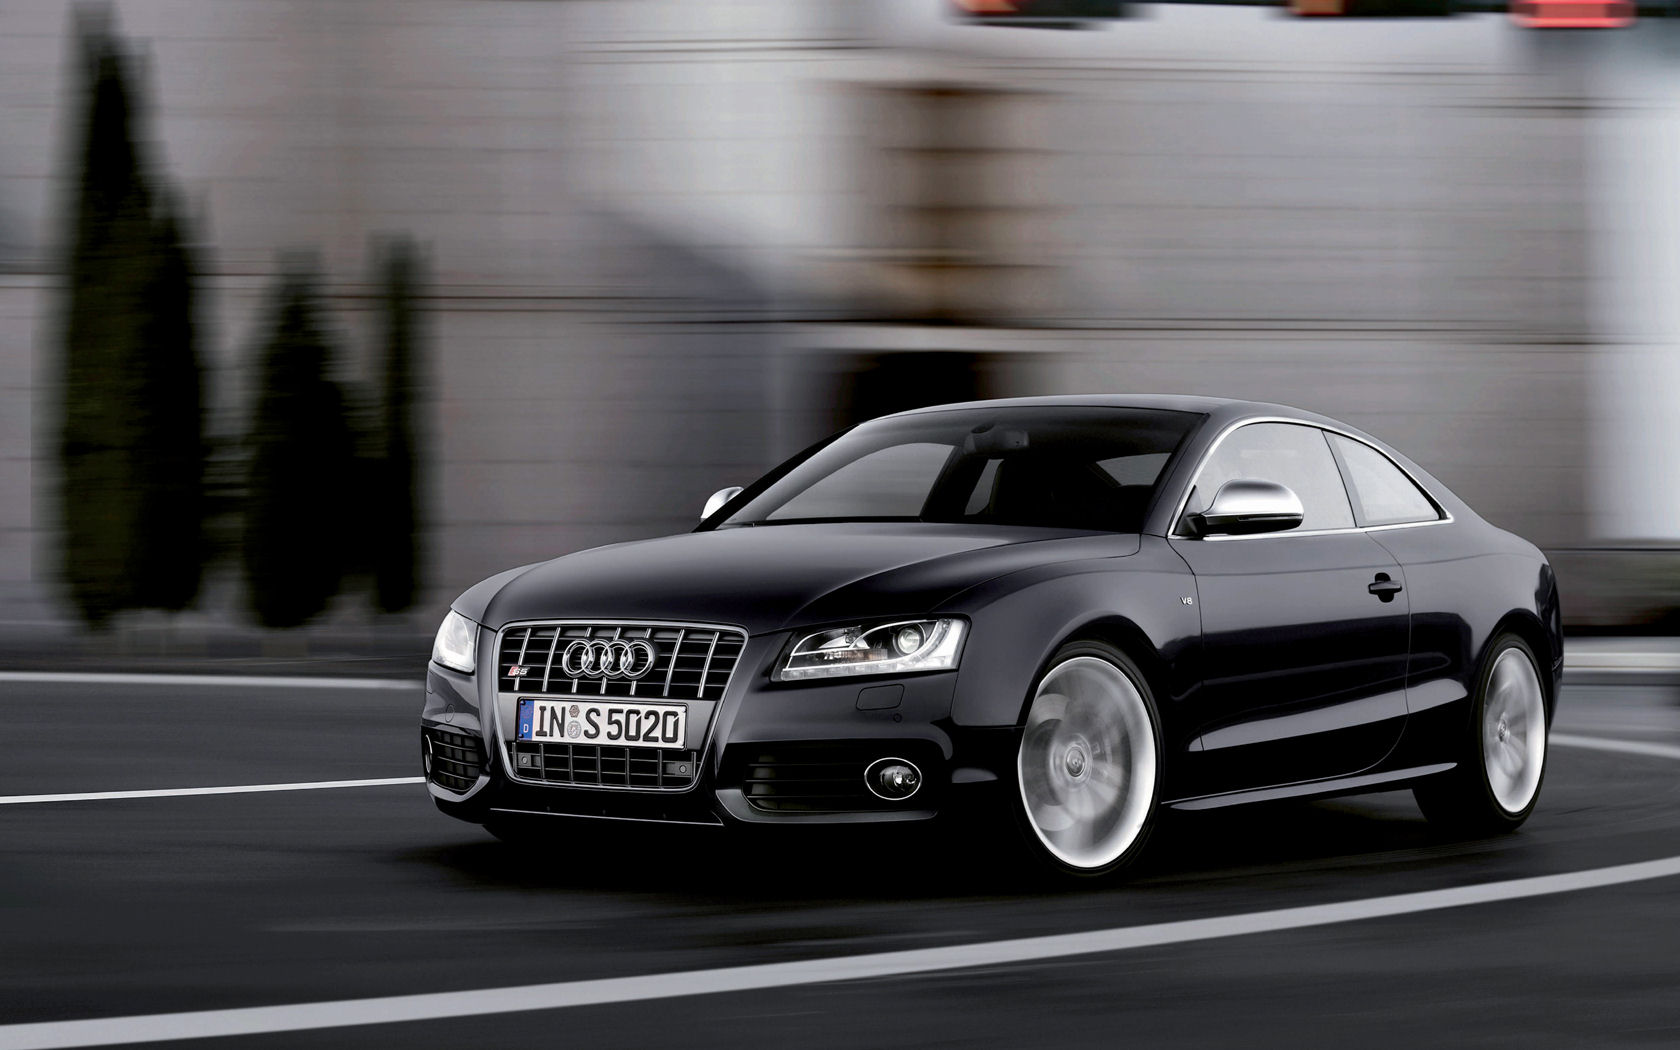 1680x1050 - Audi A5 Wallpapers 3